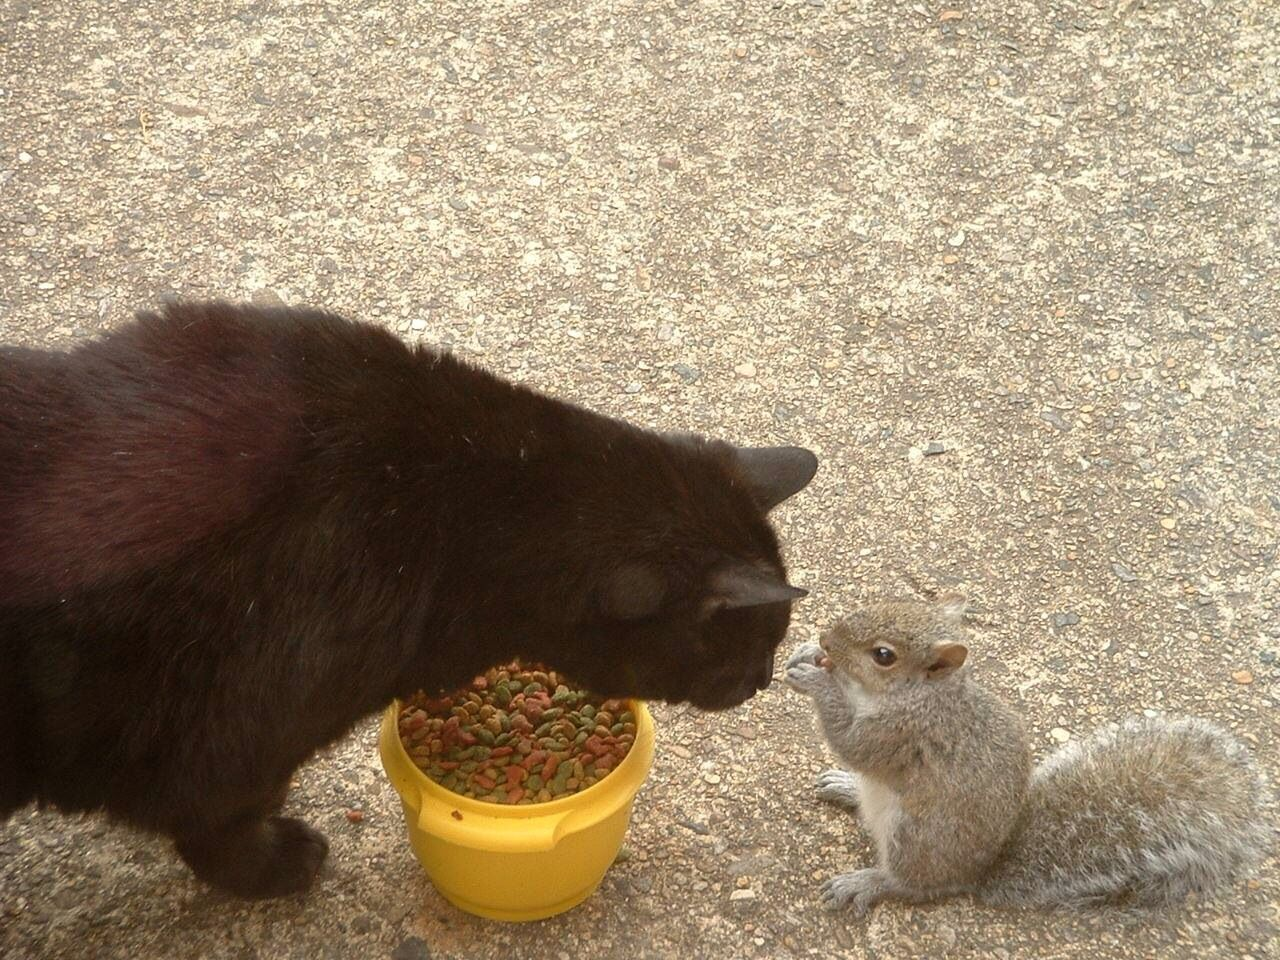 Cat and squirrel sharing food.